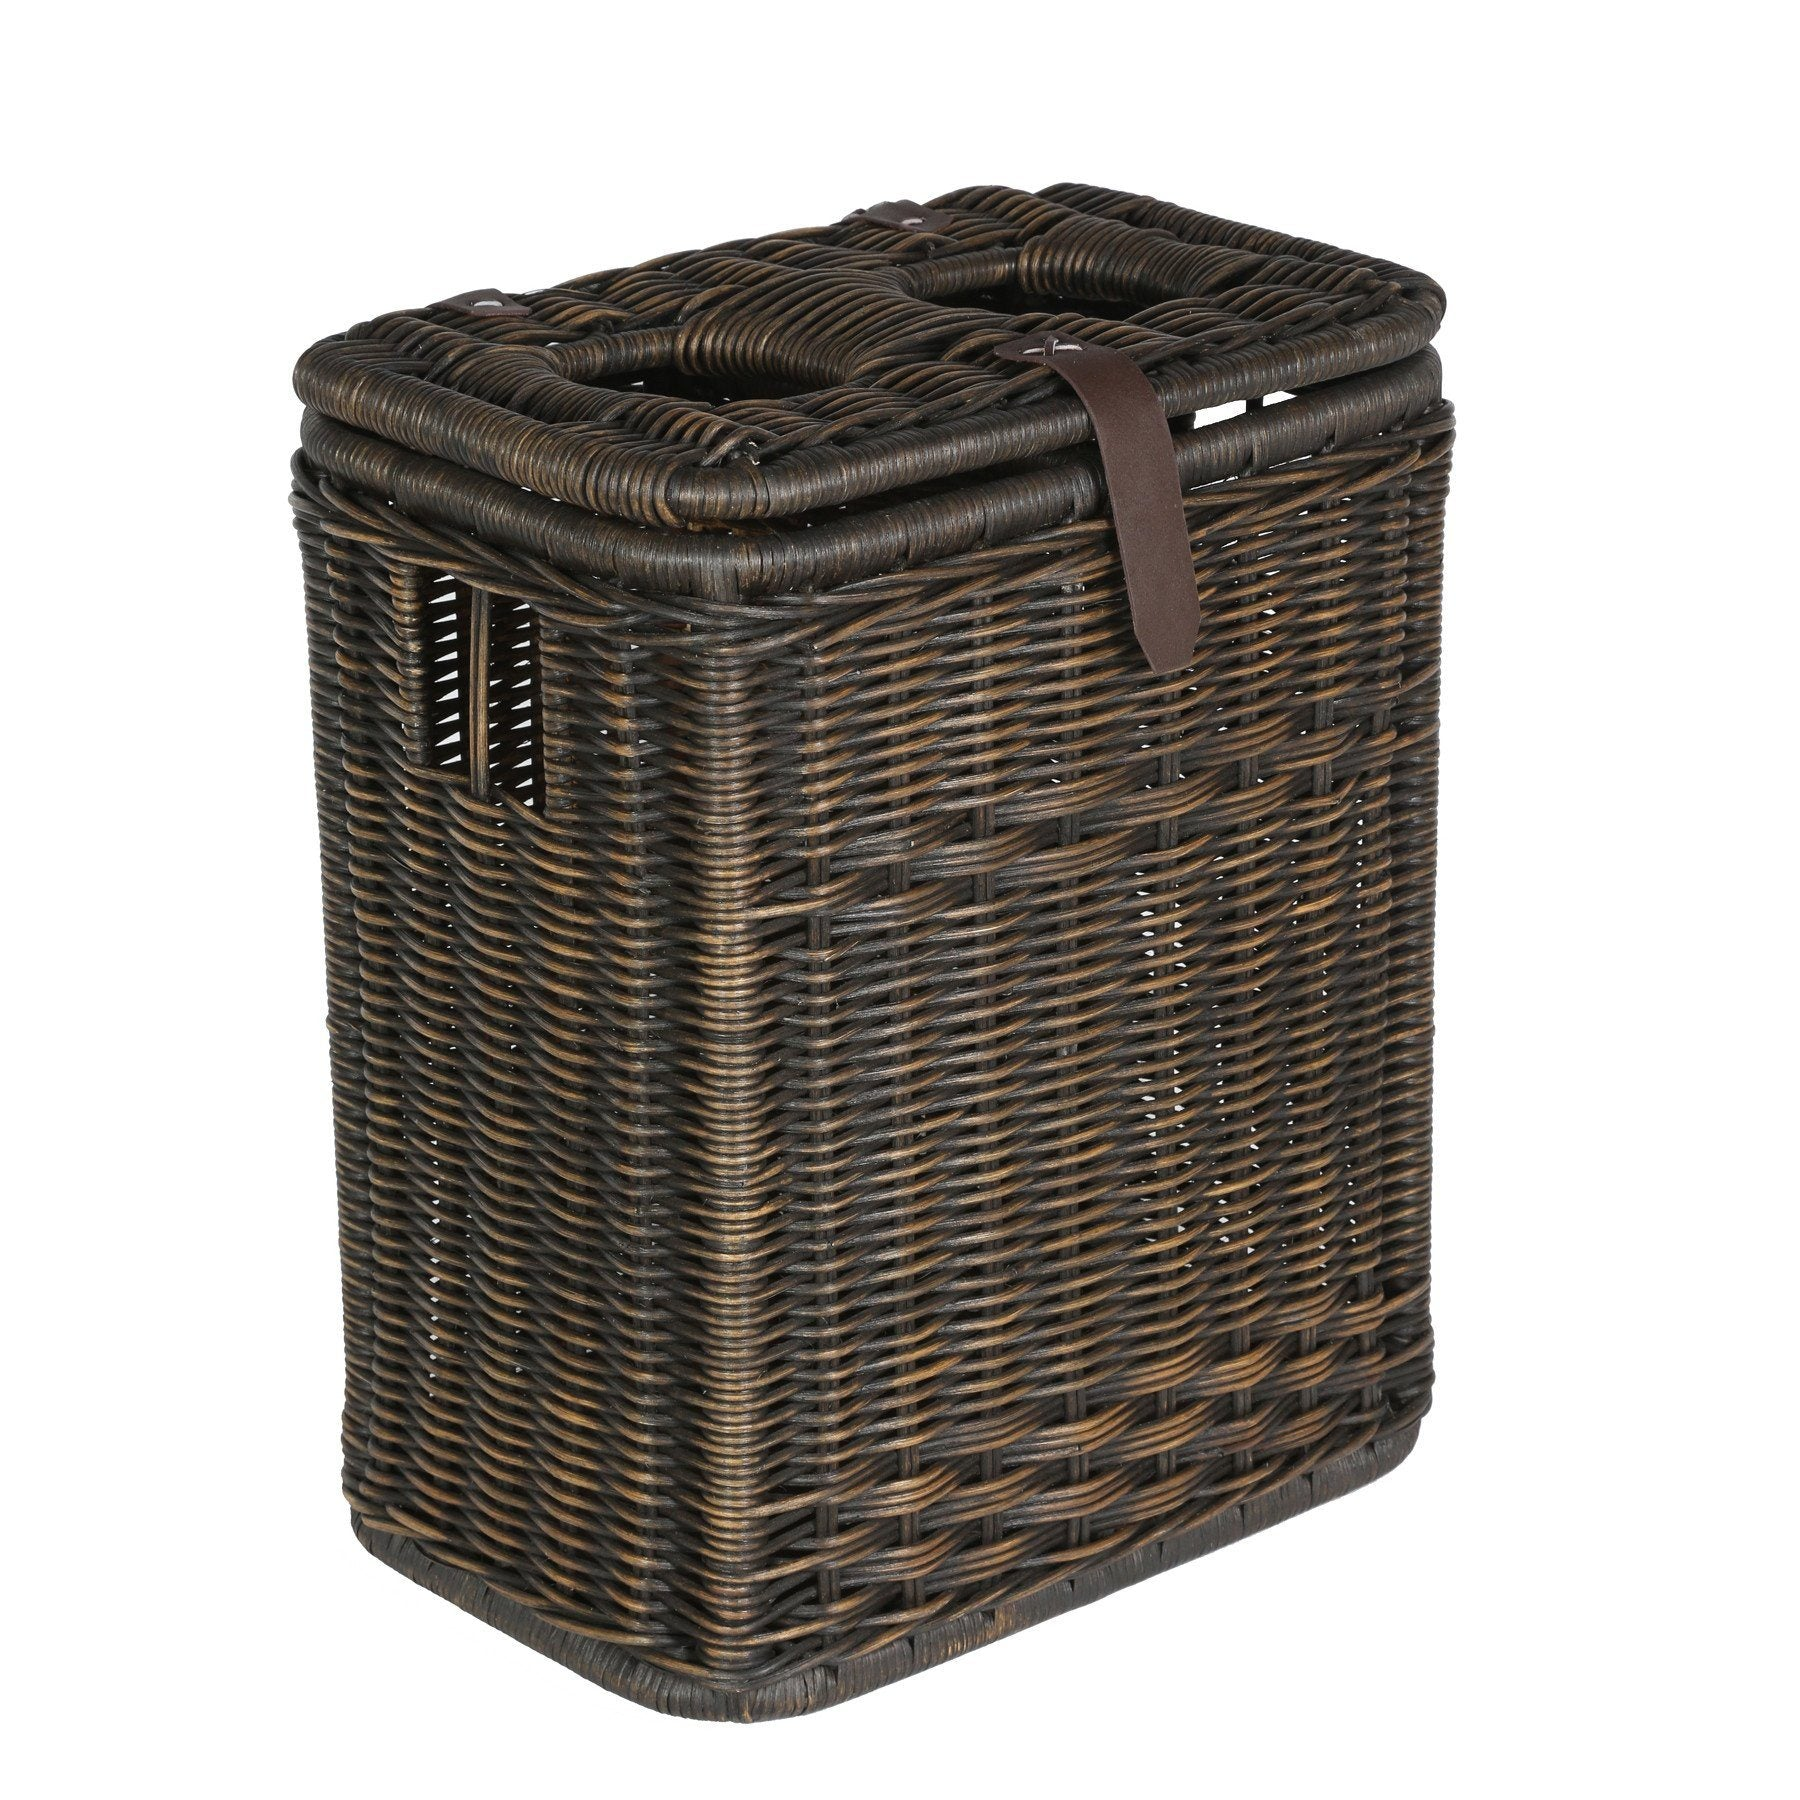 Wicker waste recycling cans baskets and bins the basket lady - Divided wicker basket ...